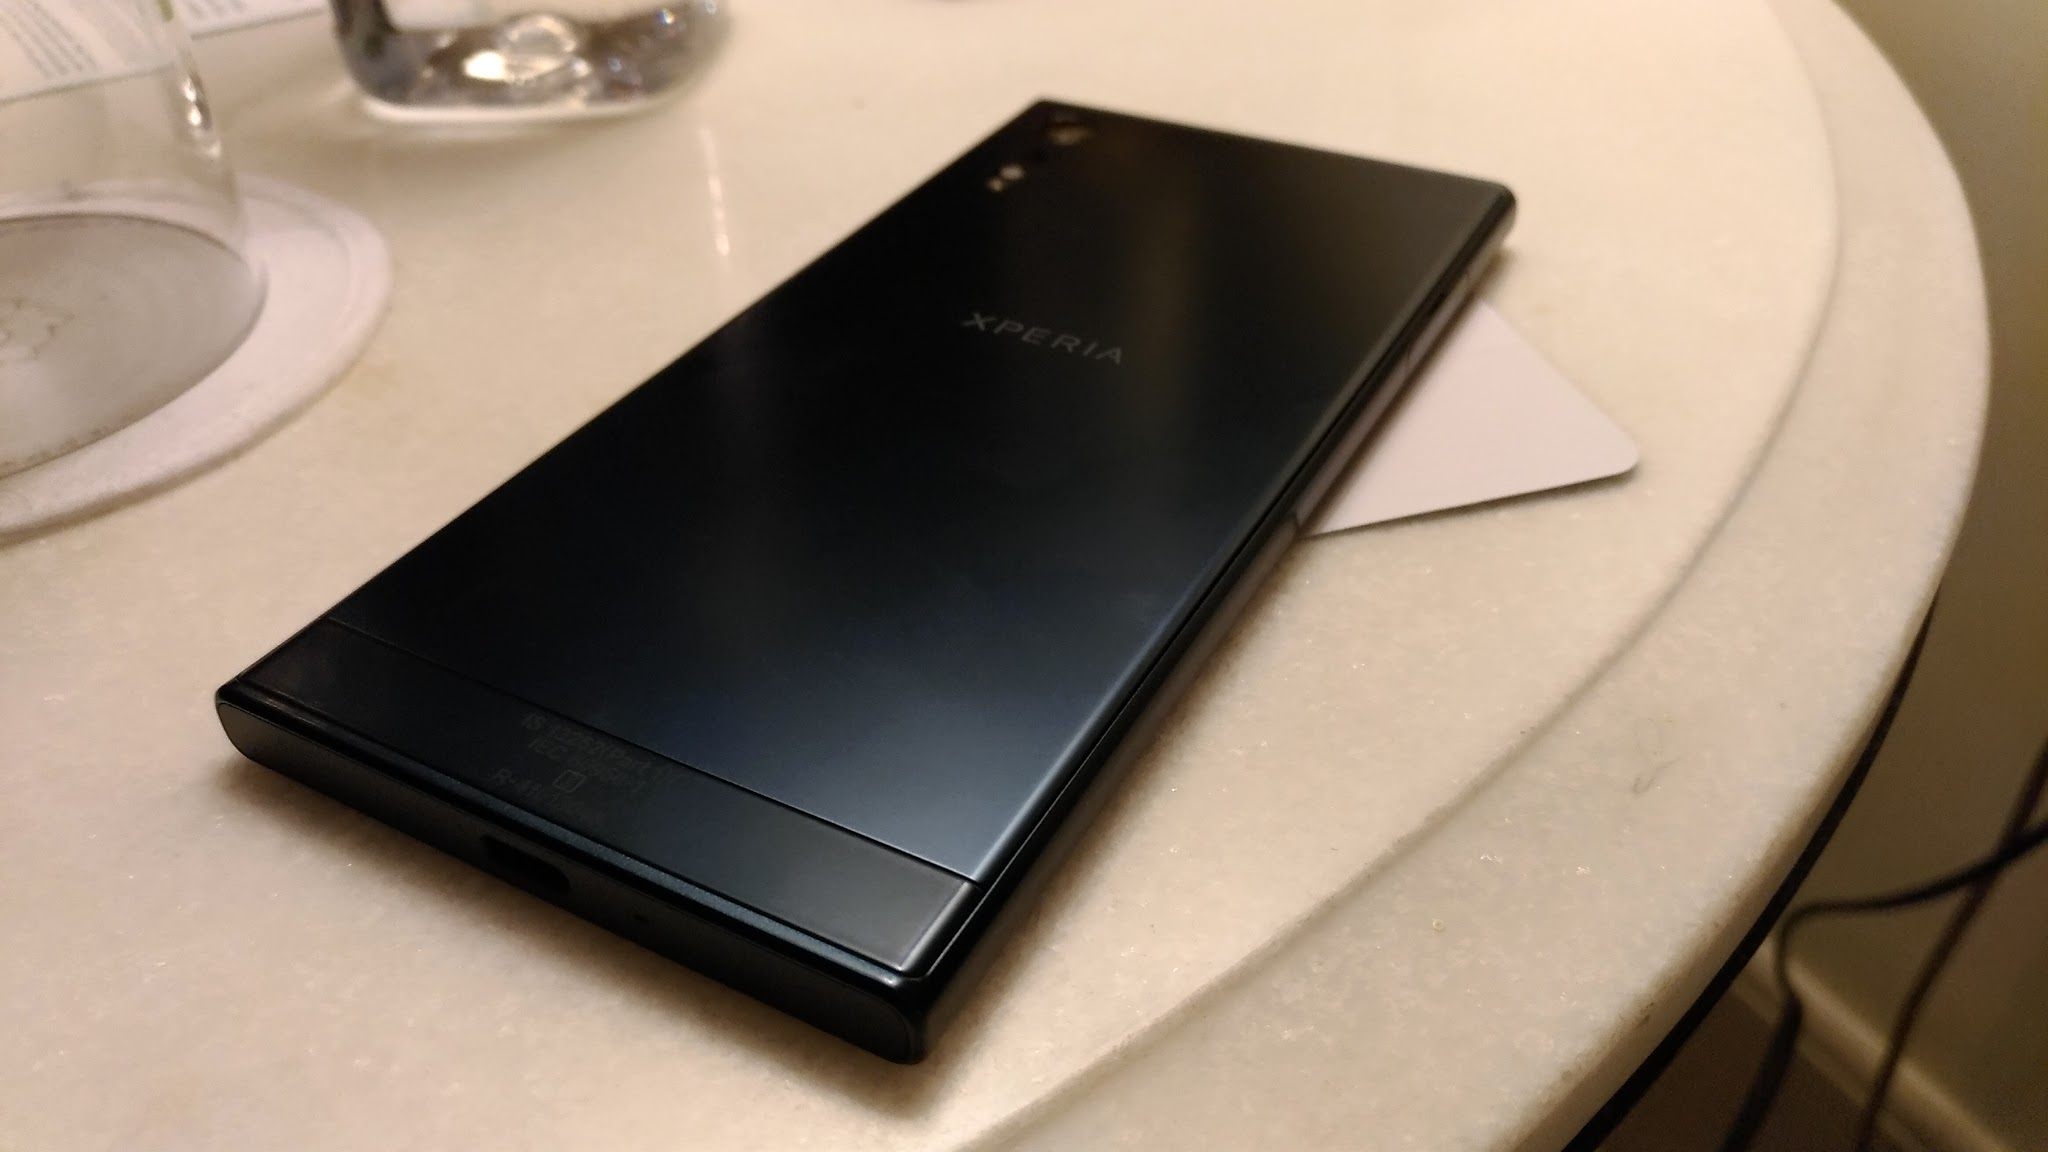 sony xperia xz hands on and quick overview pricing and. Black Bedroom Furniture Sets. Home Design Ideas